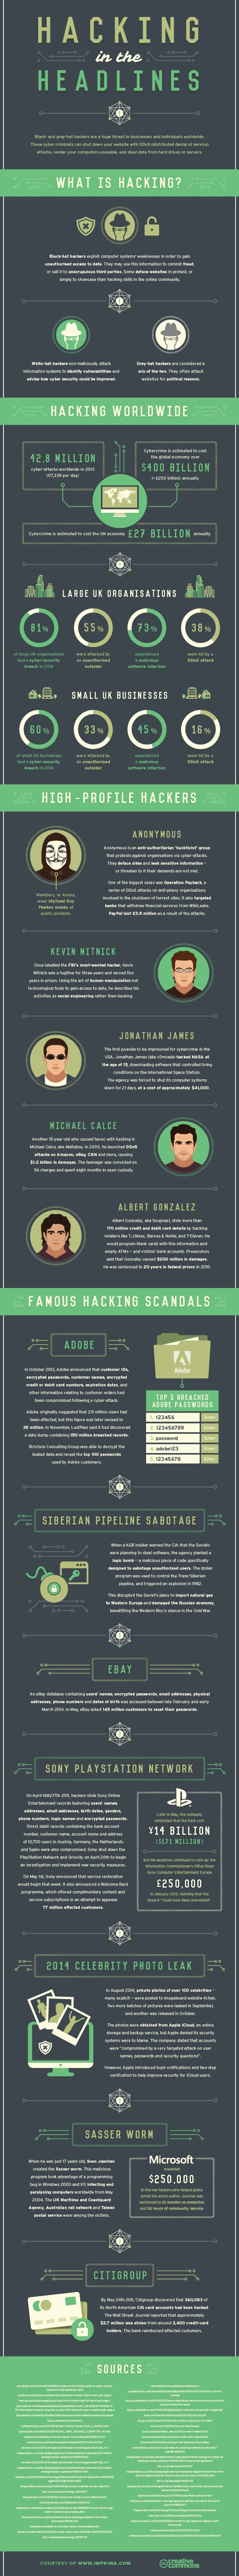 Infographic-hacking-in-the-headlines